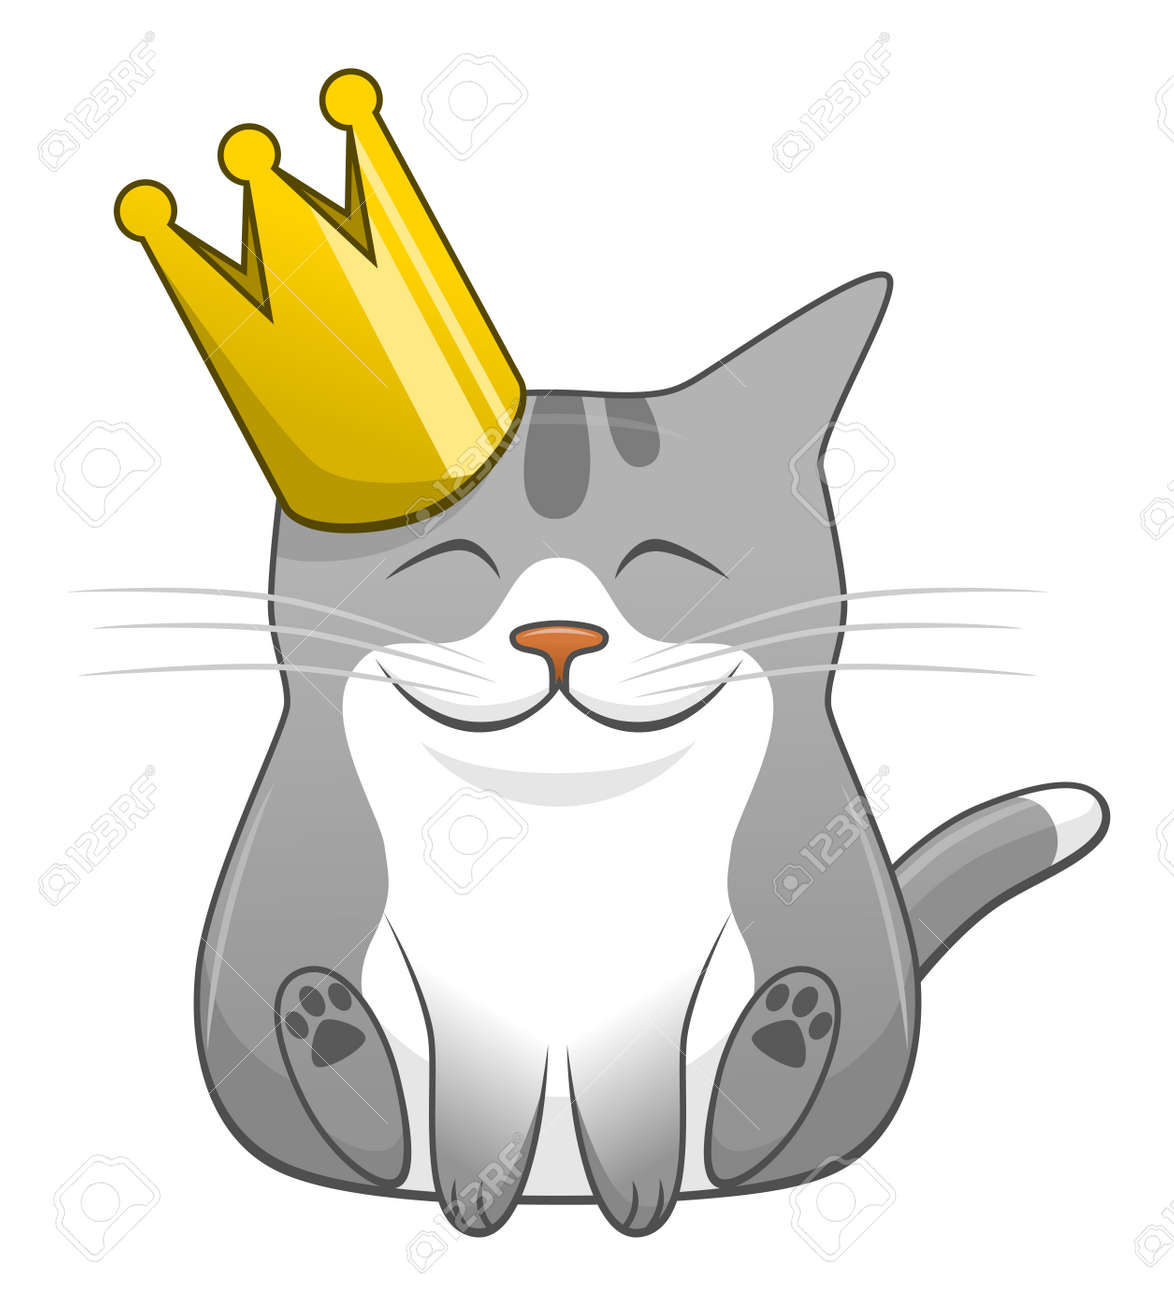 Cartoon Cute Cat With Crown Royalty Free Cliparts Vectors And Stock Illustration Image 99562390 This is only fan art. cartoon cute cat with crown